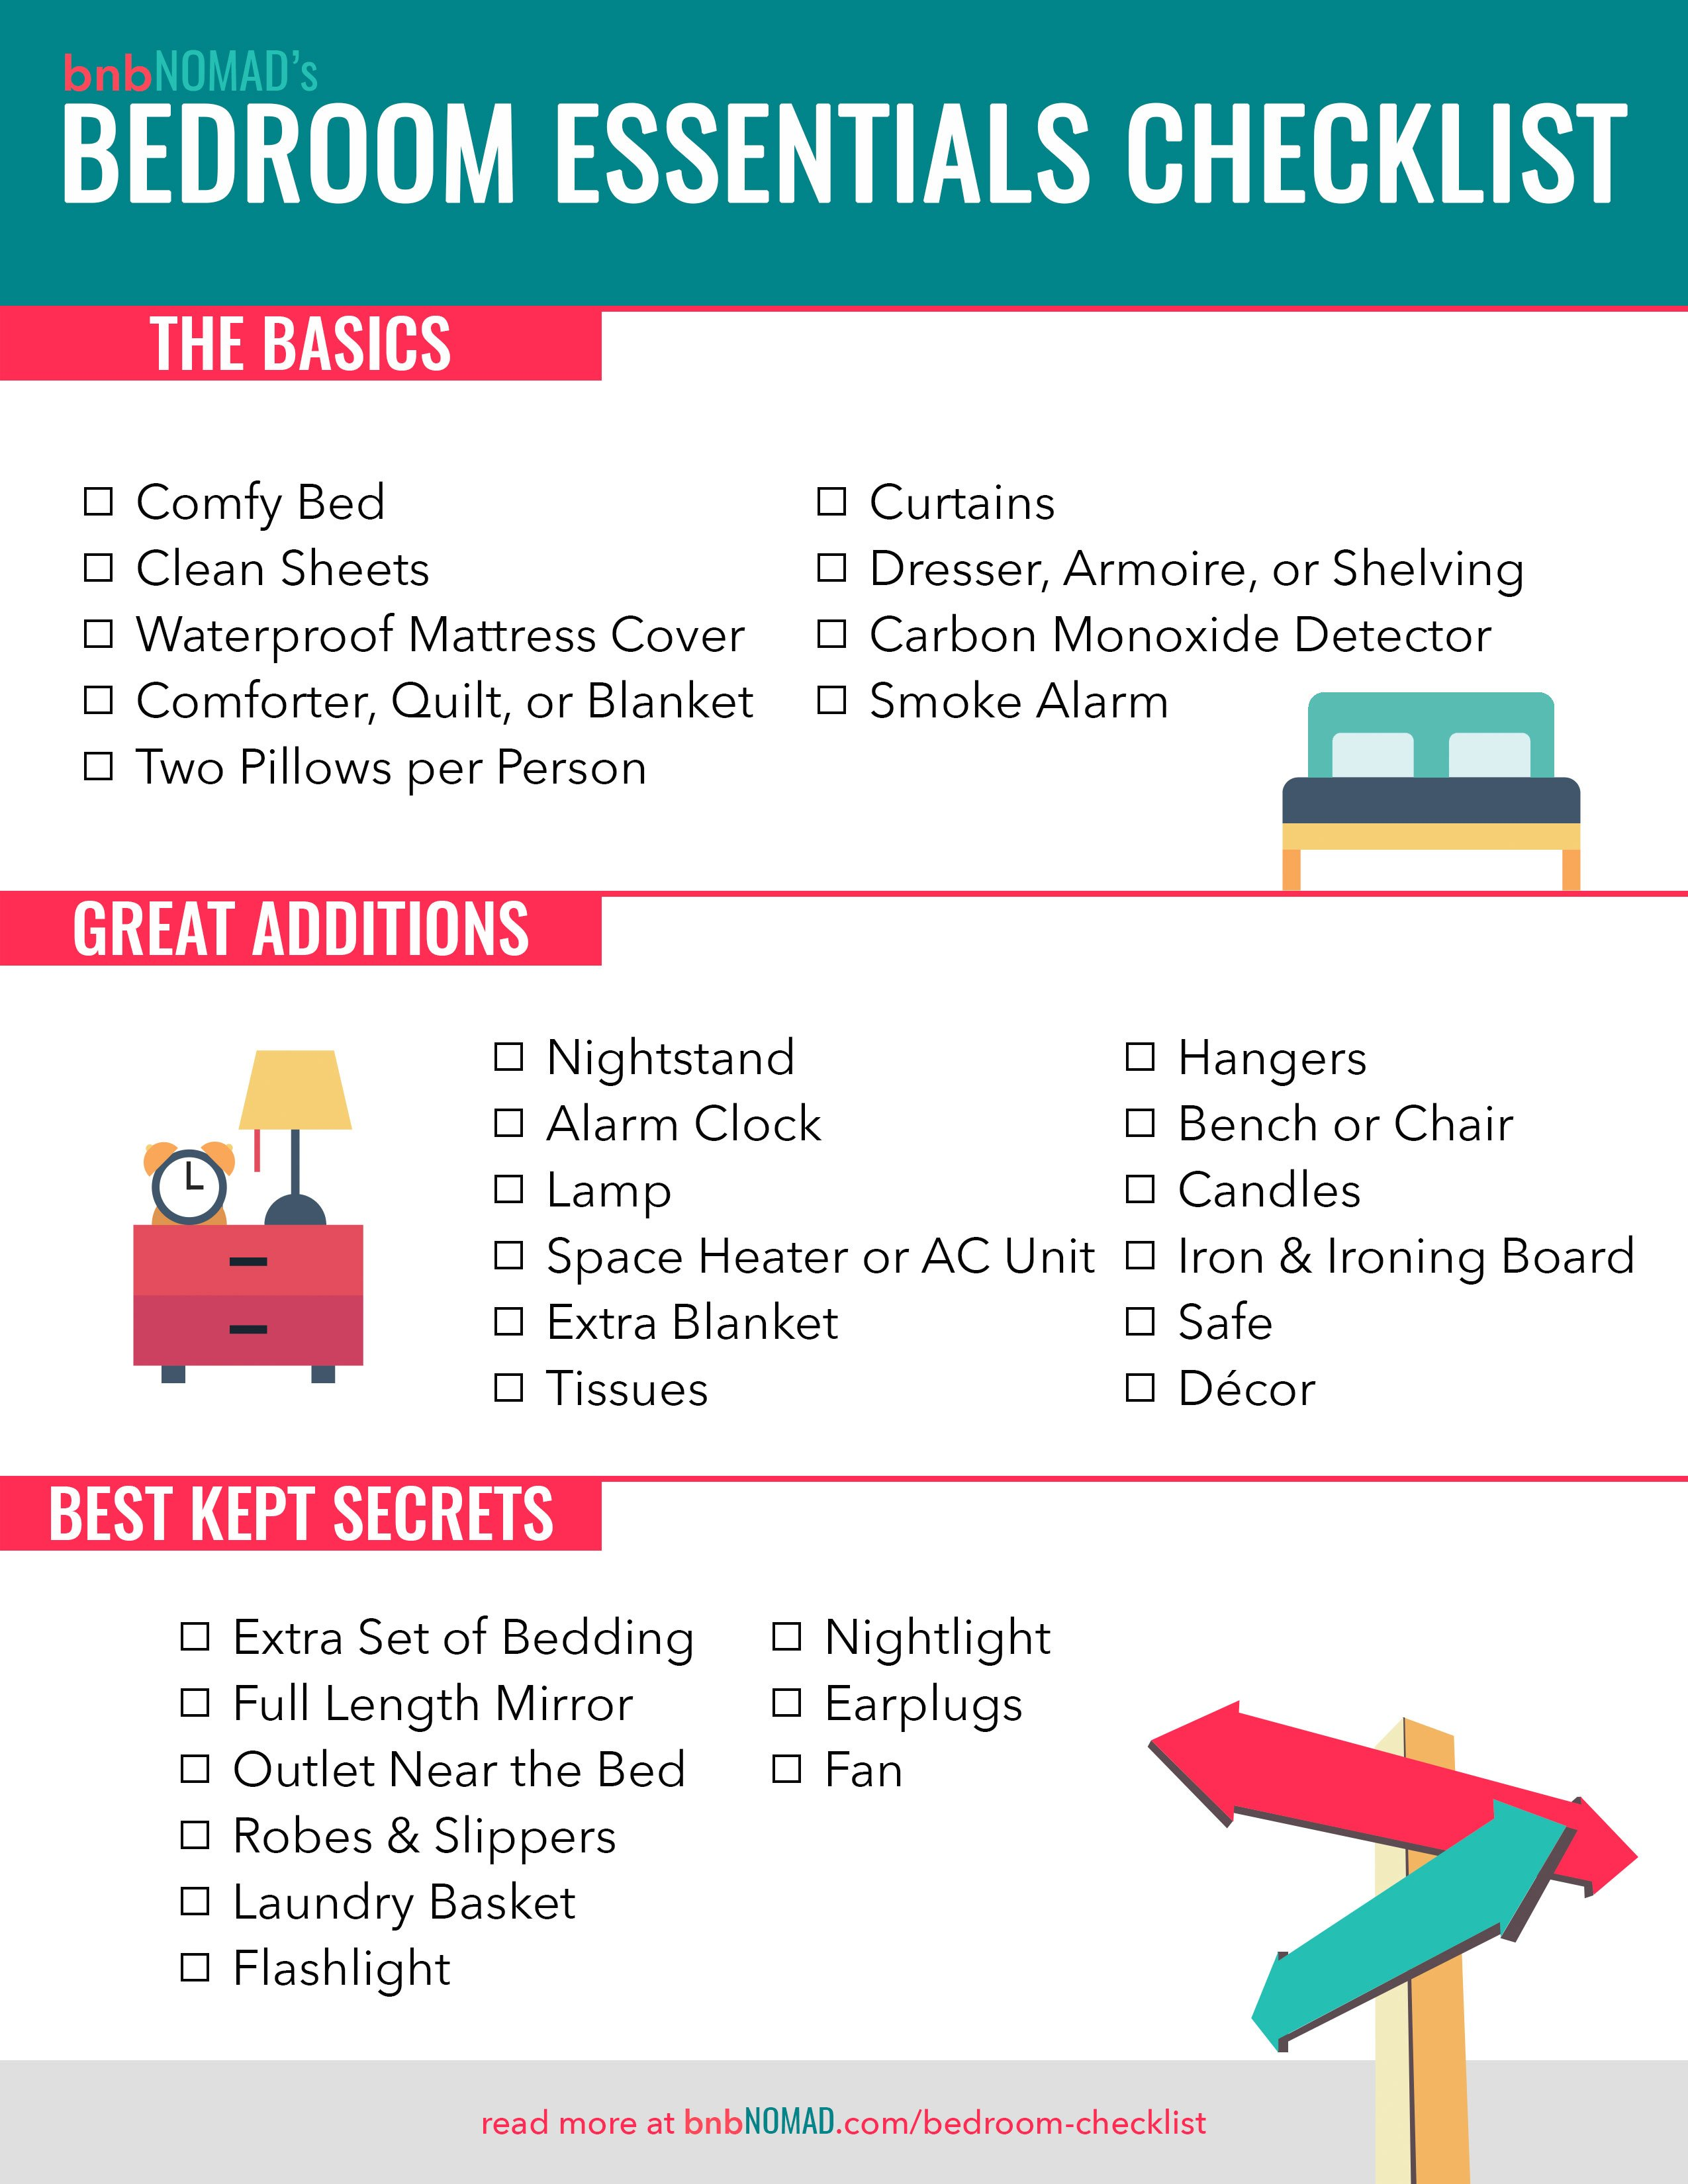 The Airbnb Host's Essential Bedroom Checklist